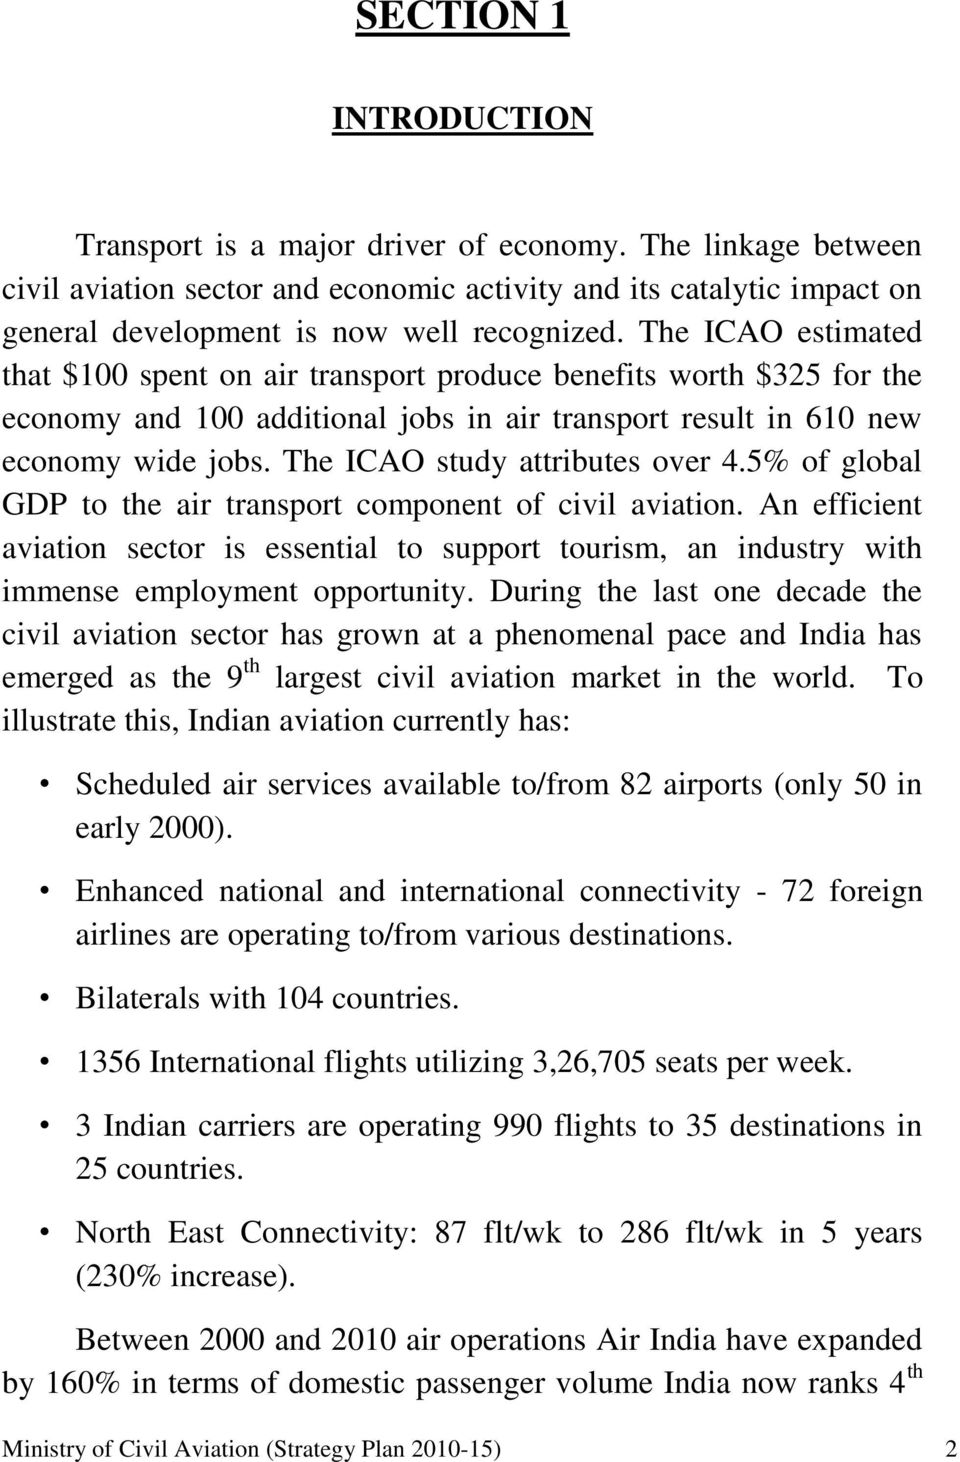 The ICAO study attributes over 4.5% of global GDP to the air transport component of civil aviation.